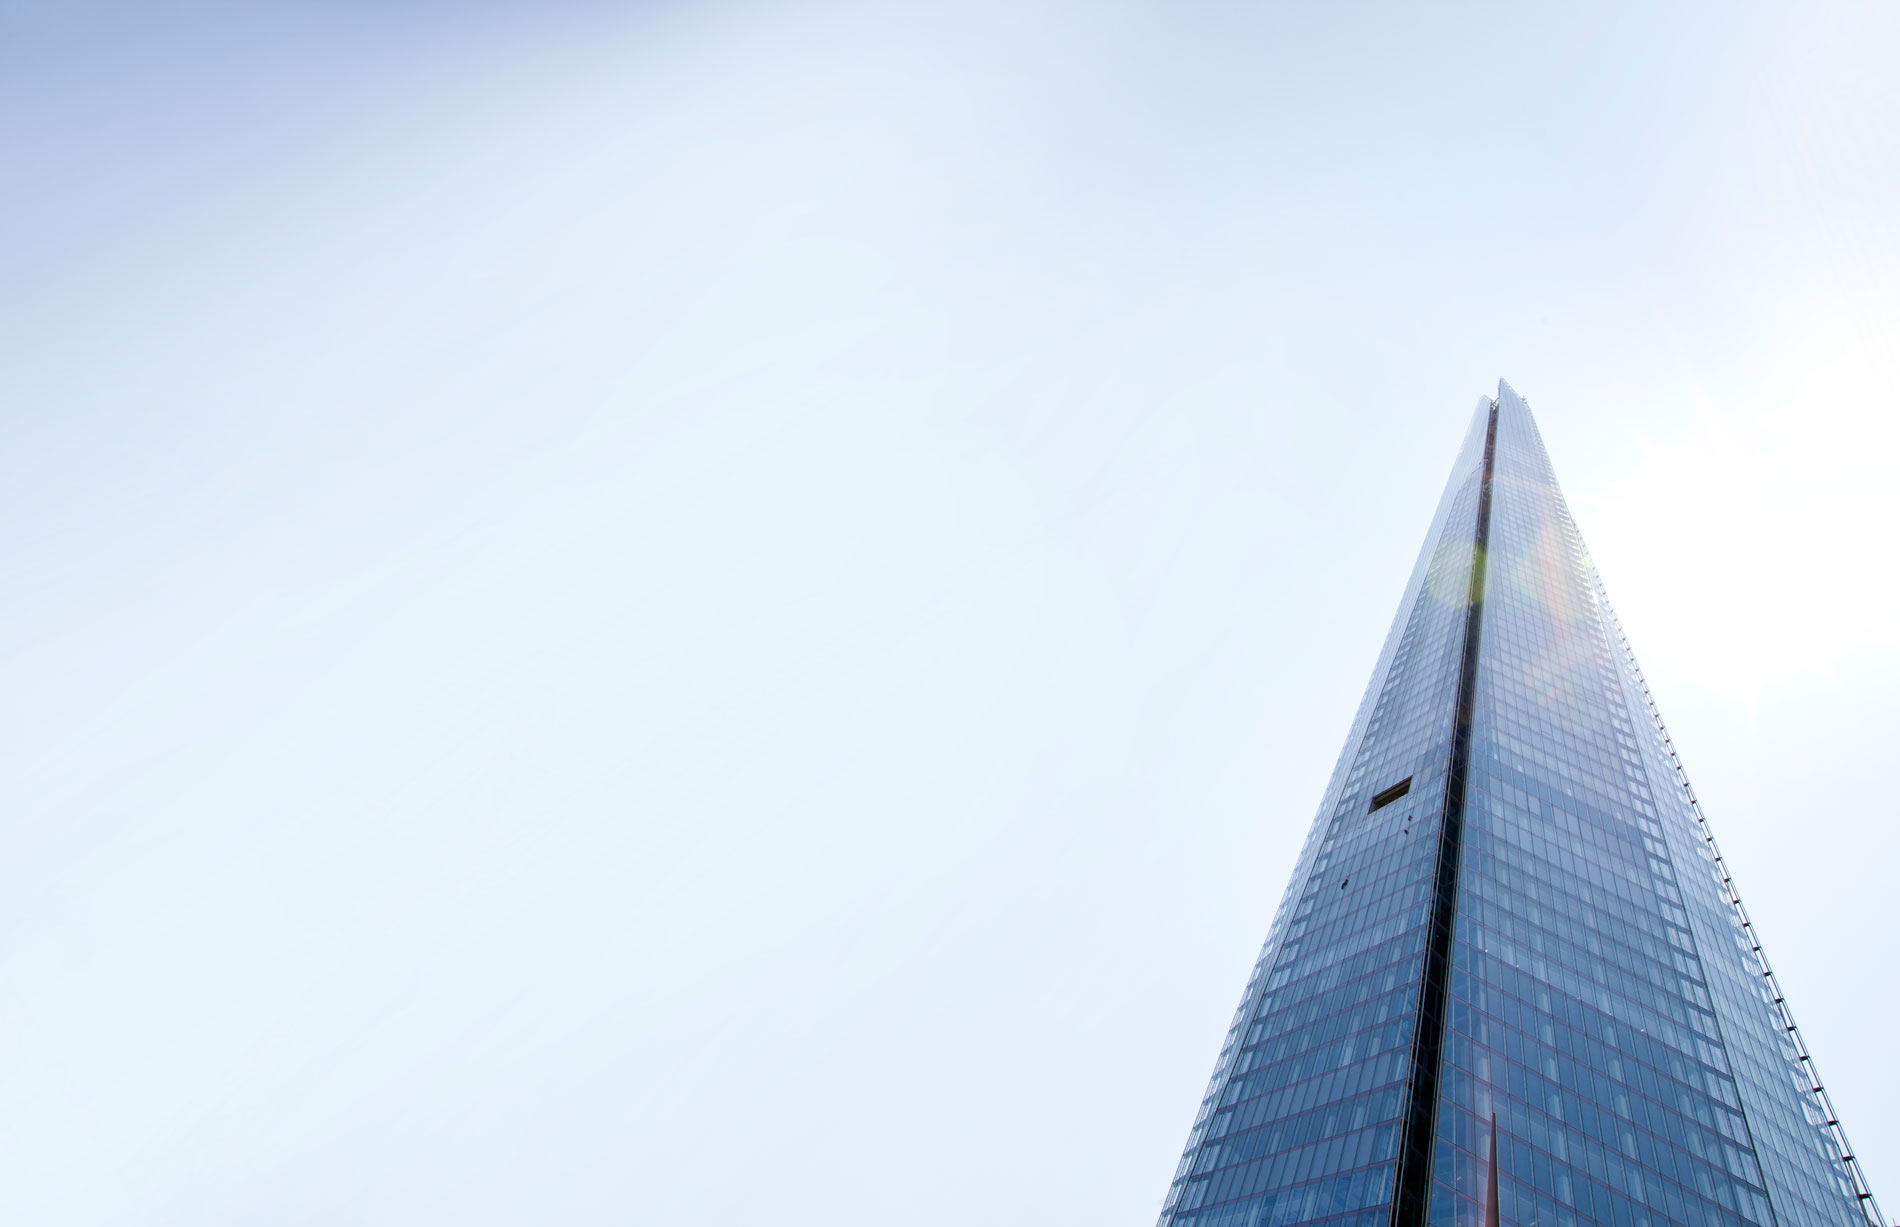 Close-up view of the shard